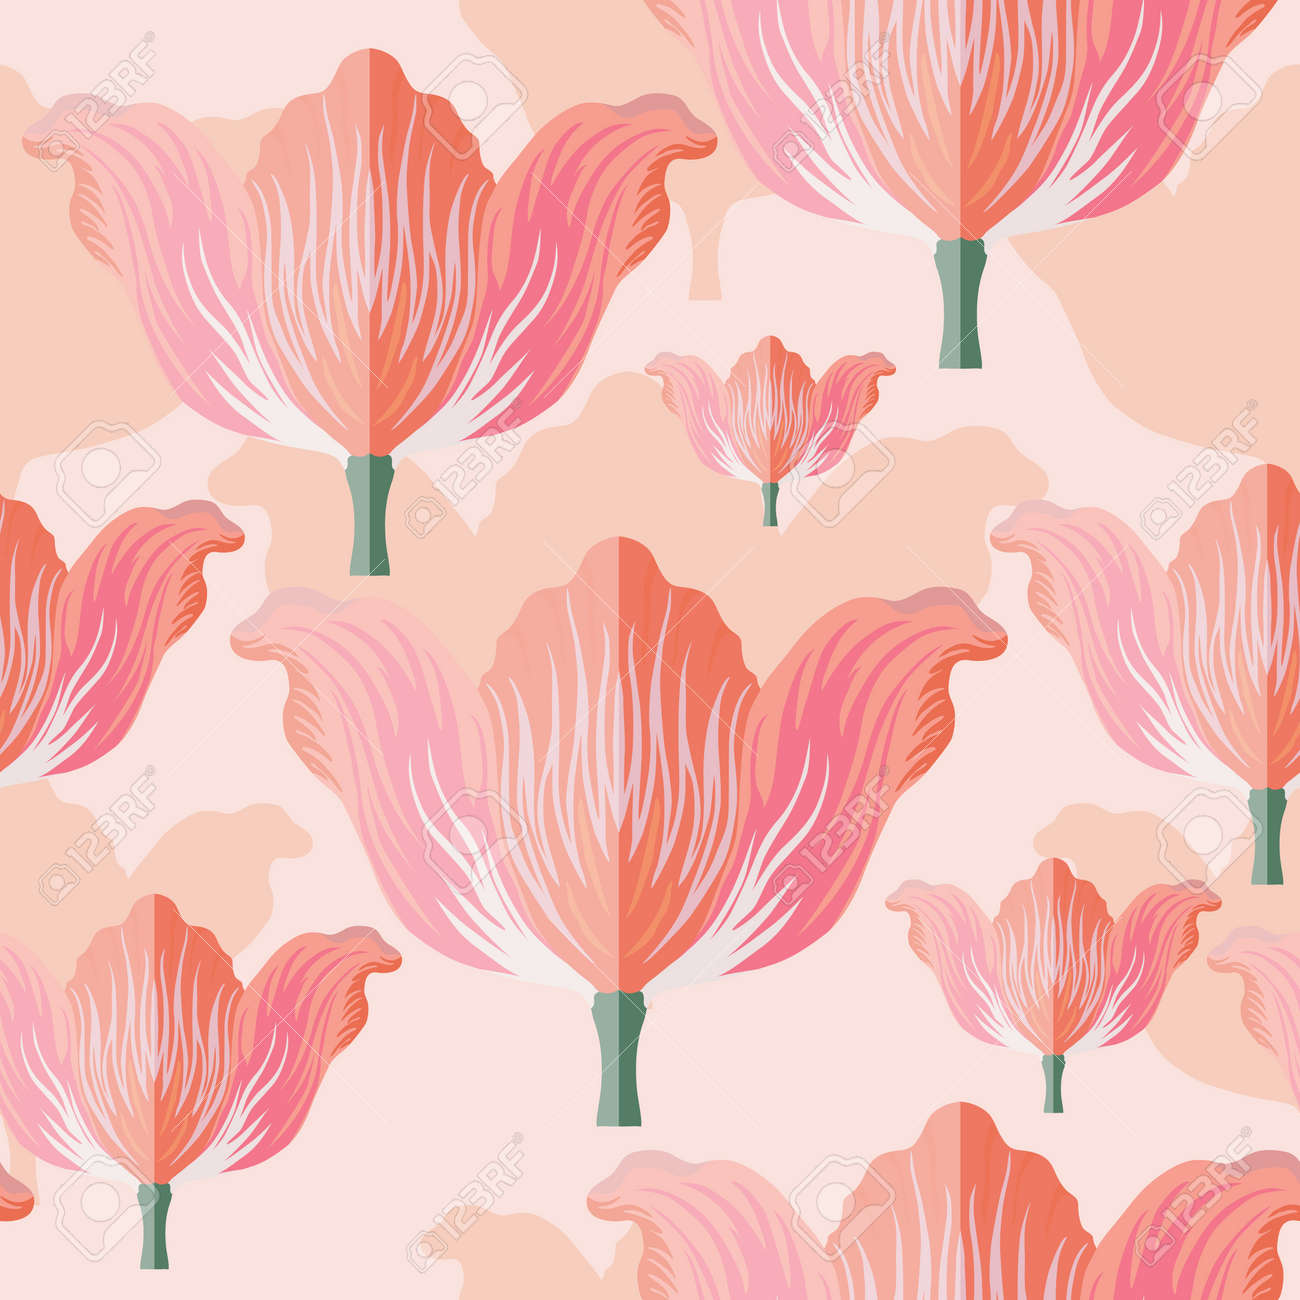 Seamless pattern with varietal pink and orange tulip. Pink silhouettes of the same tulip on the bottom layer. Symmetrical tulip without leaves. Pattern for fabrics, print, web usage etc. - 168336266